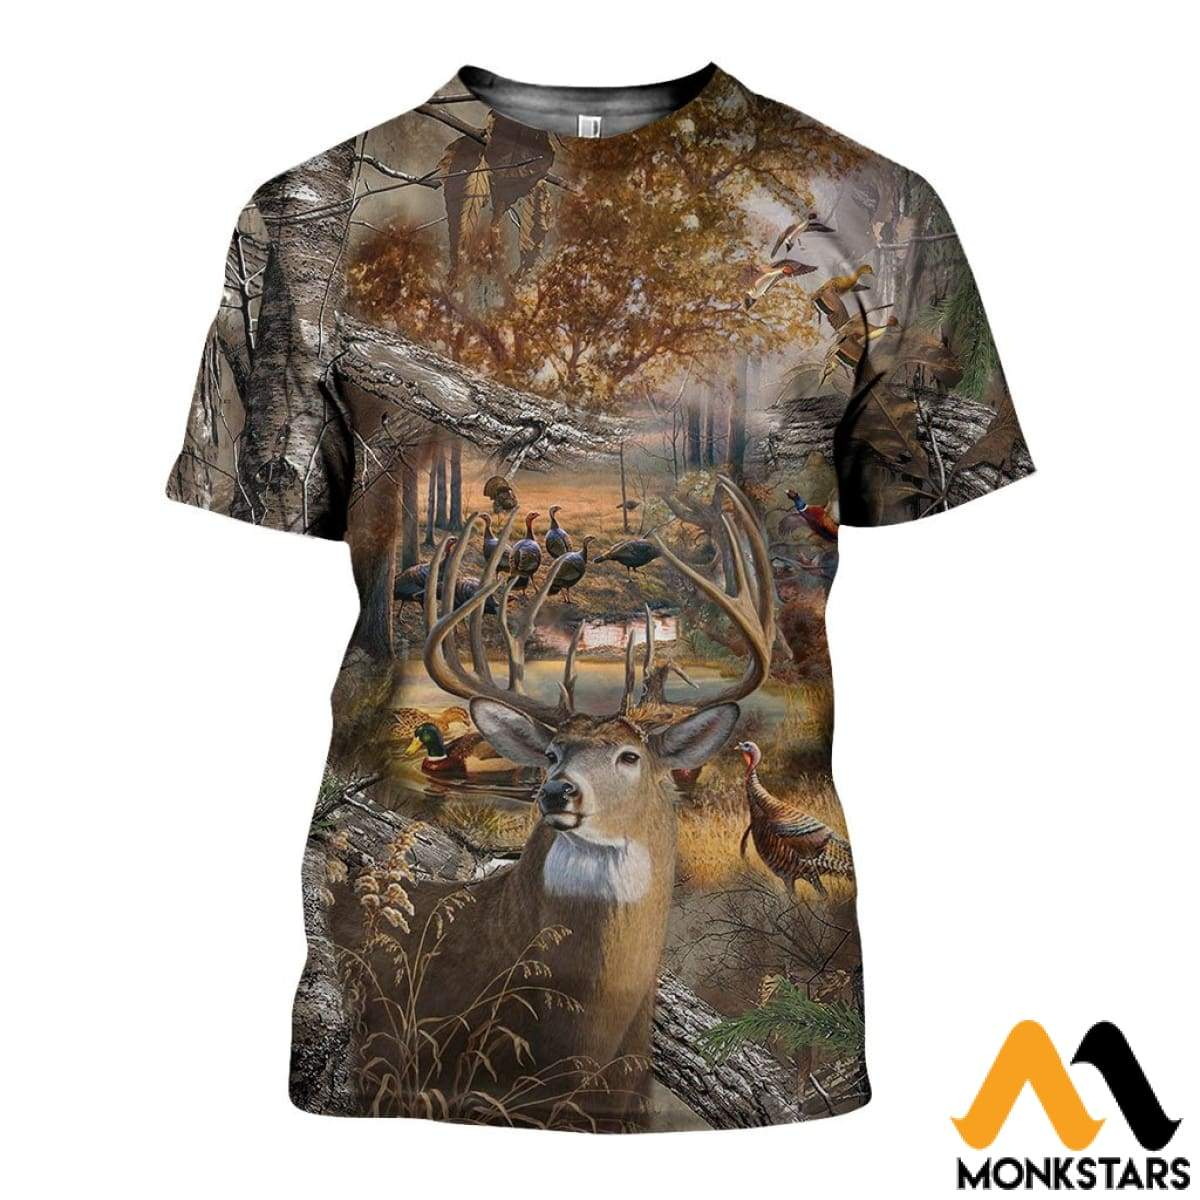 3D All Over Printed Hunting Camo Shirts And Shorts T-Shirt / Xs Clothes